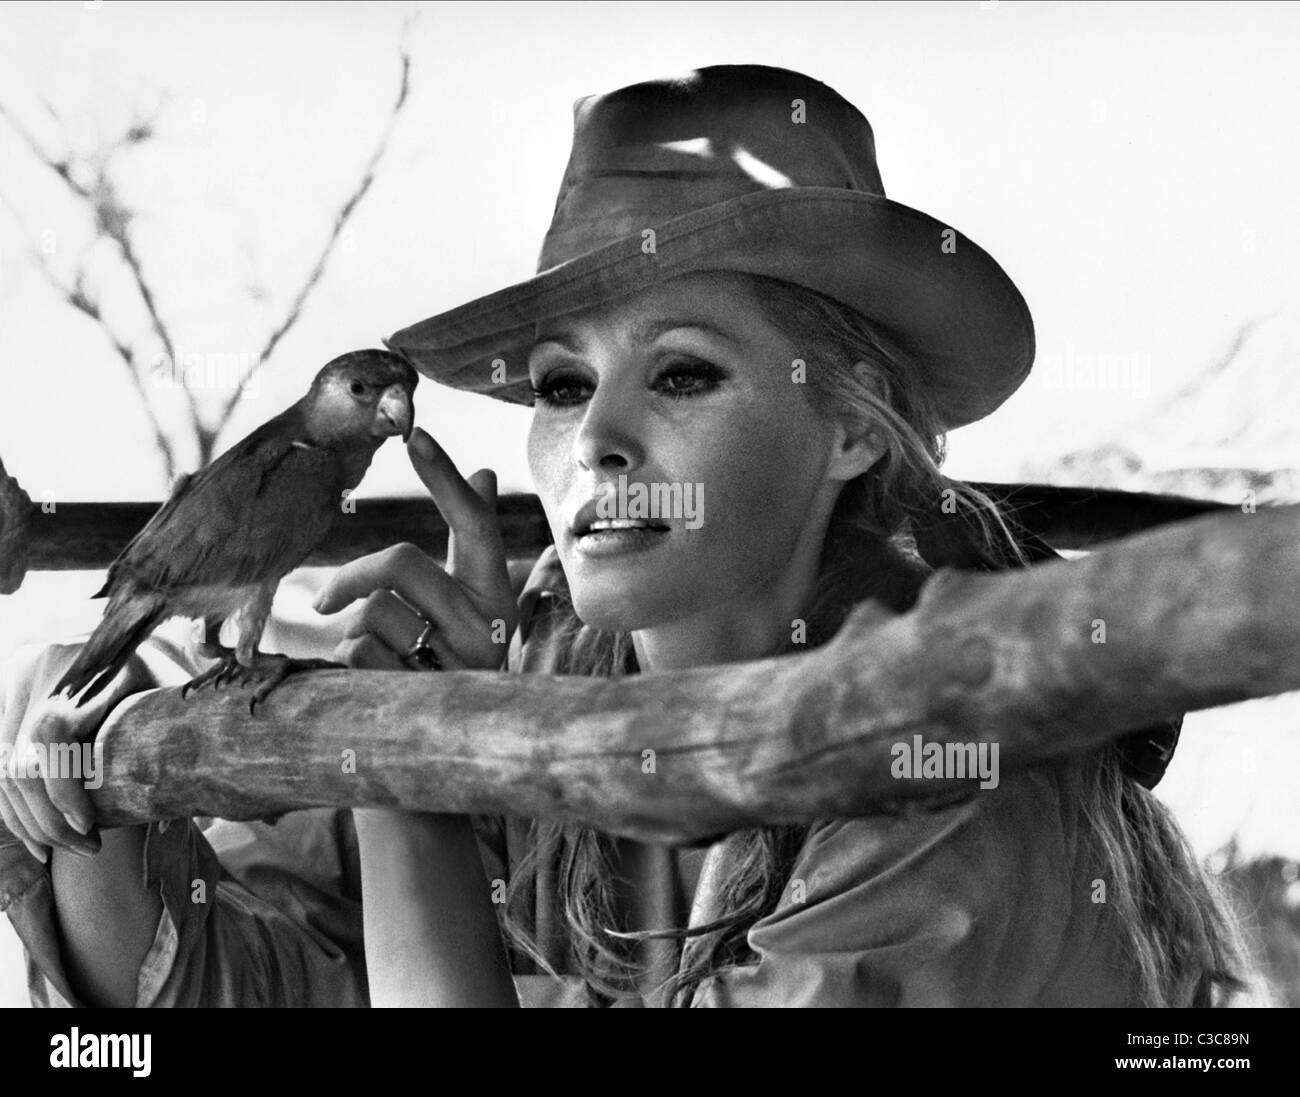 URSULA ANDRESS THE SOUTHERN STAR (1969) - Stock Image